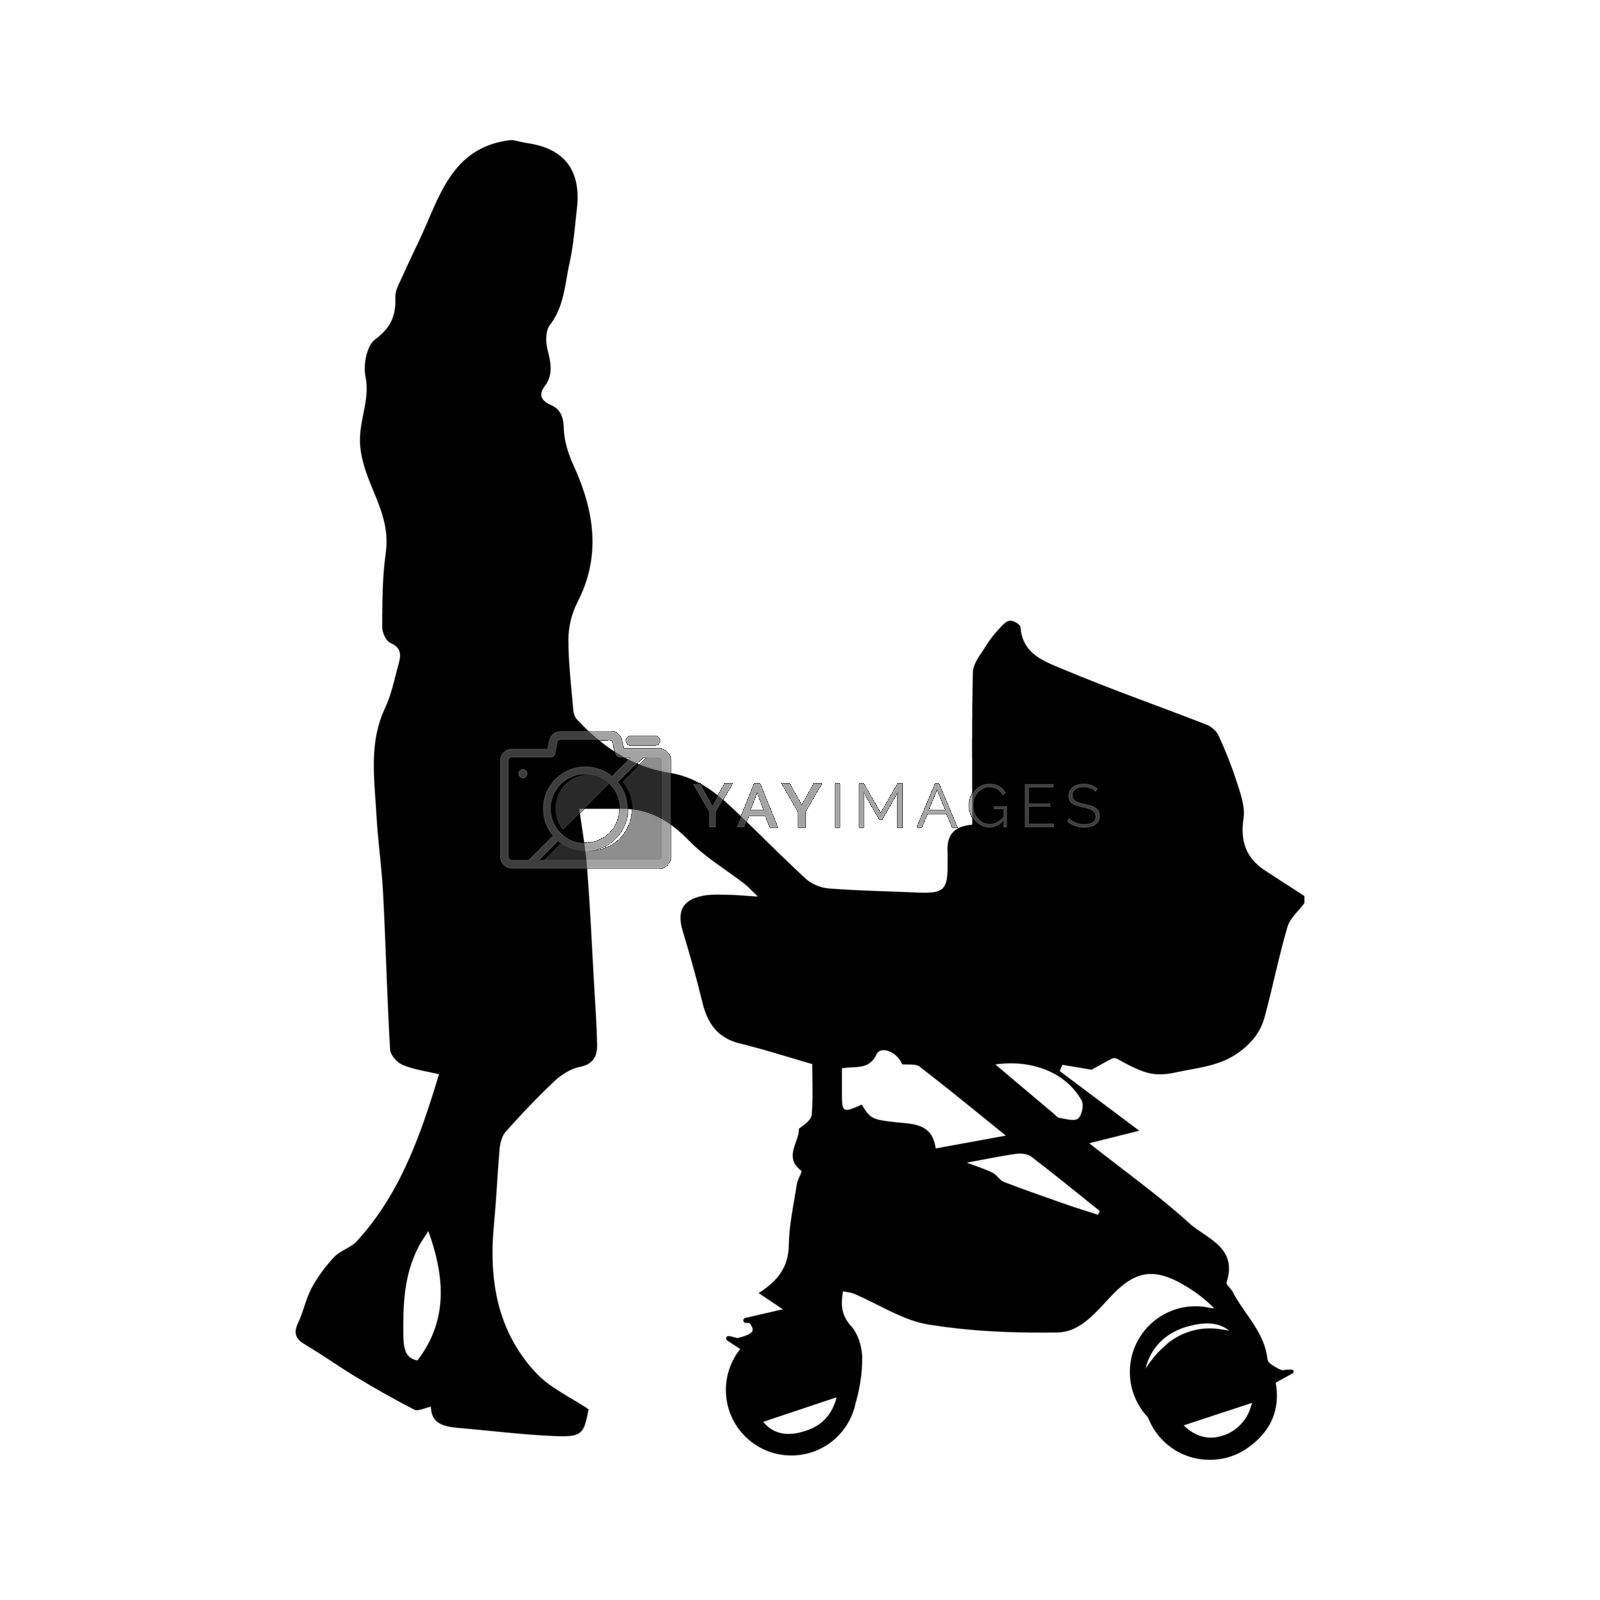 Woman with a baby carriage, simple silhouette drawing